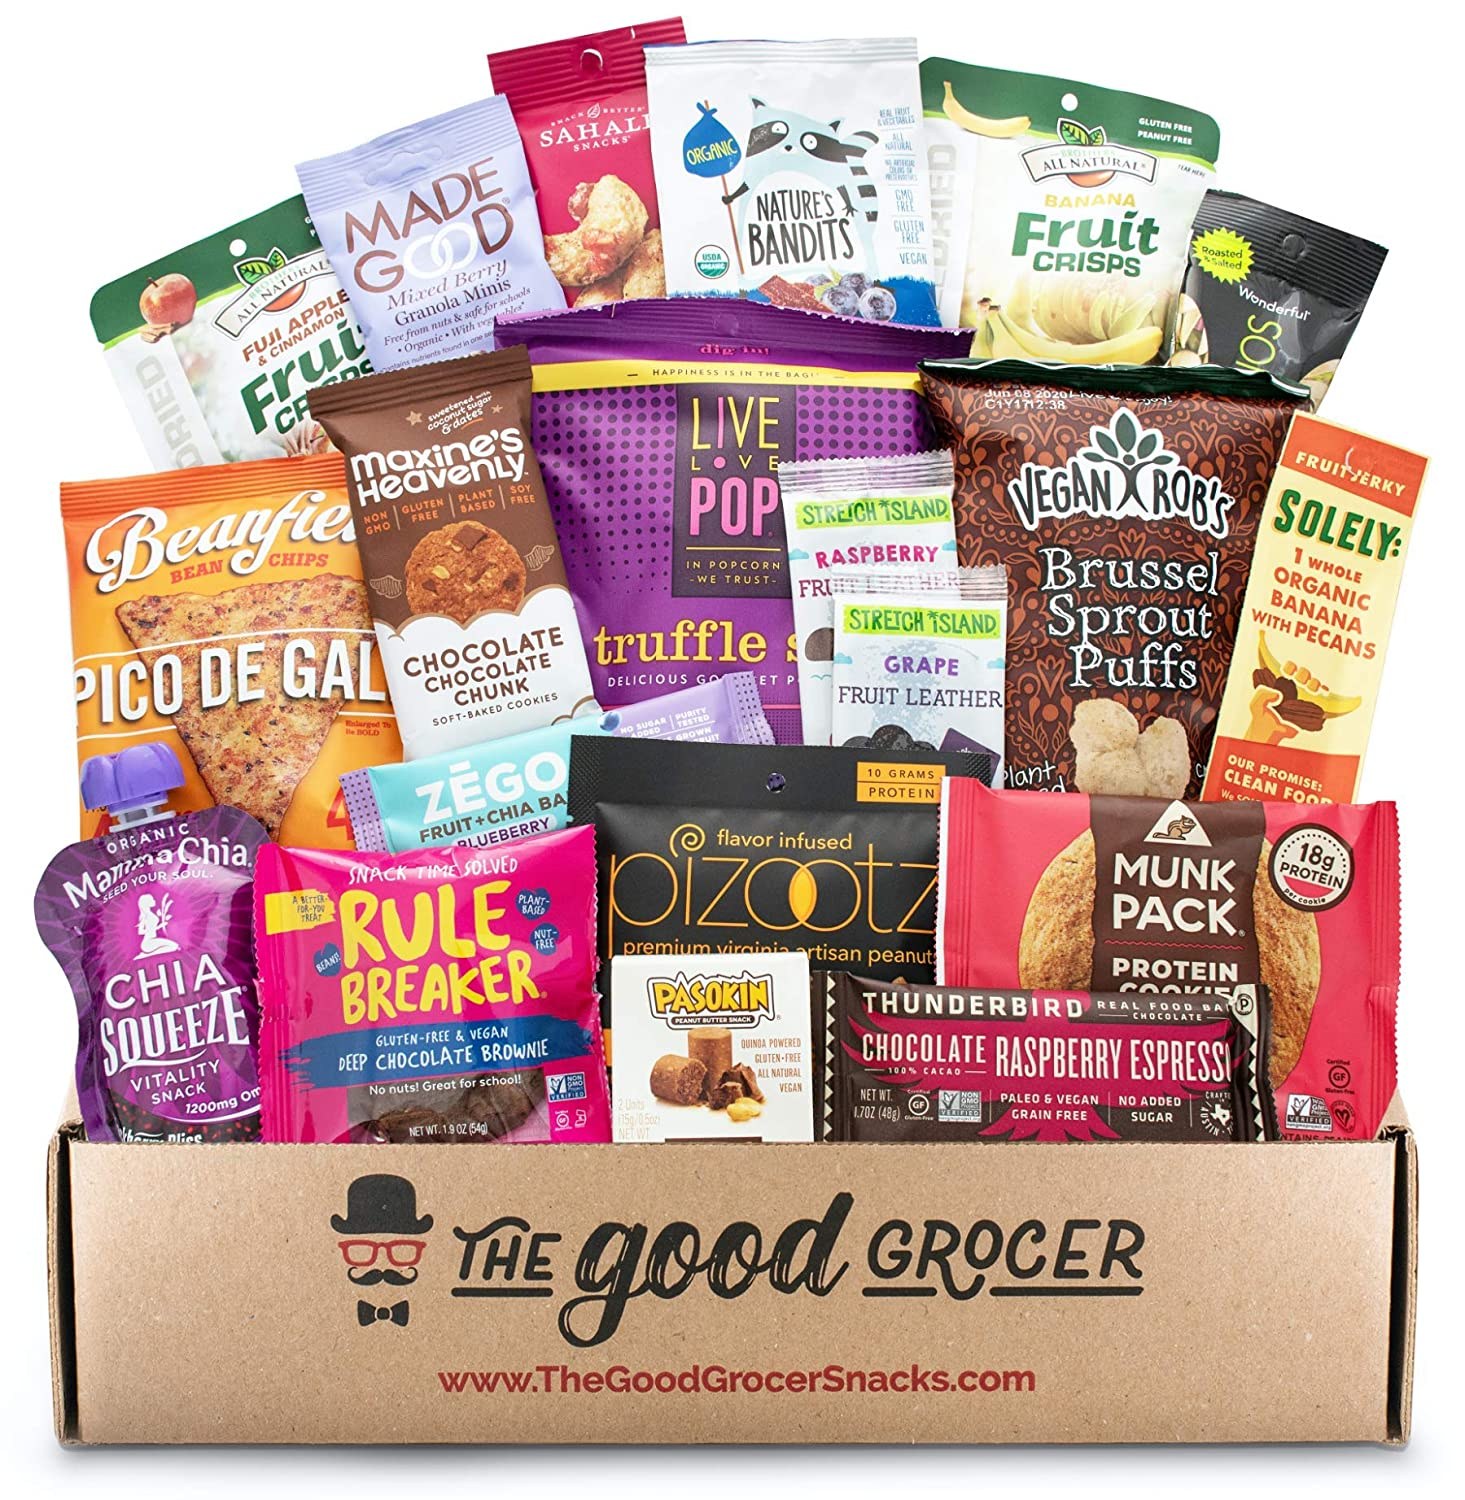 Premium GLUTEN FREE and VEGAN (DAIRY and SOY FREE) Healthy Snacks Care Package (20Ct): Featuring Delicious Wholesome Nutrient Dense Gluten Free and Vegan snacks. Office College Client Gift Box Basket